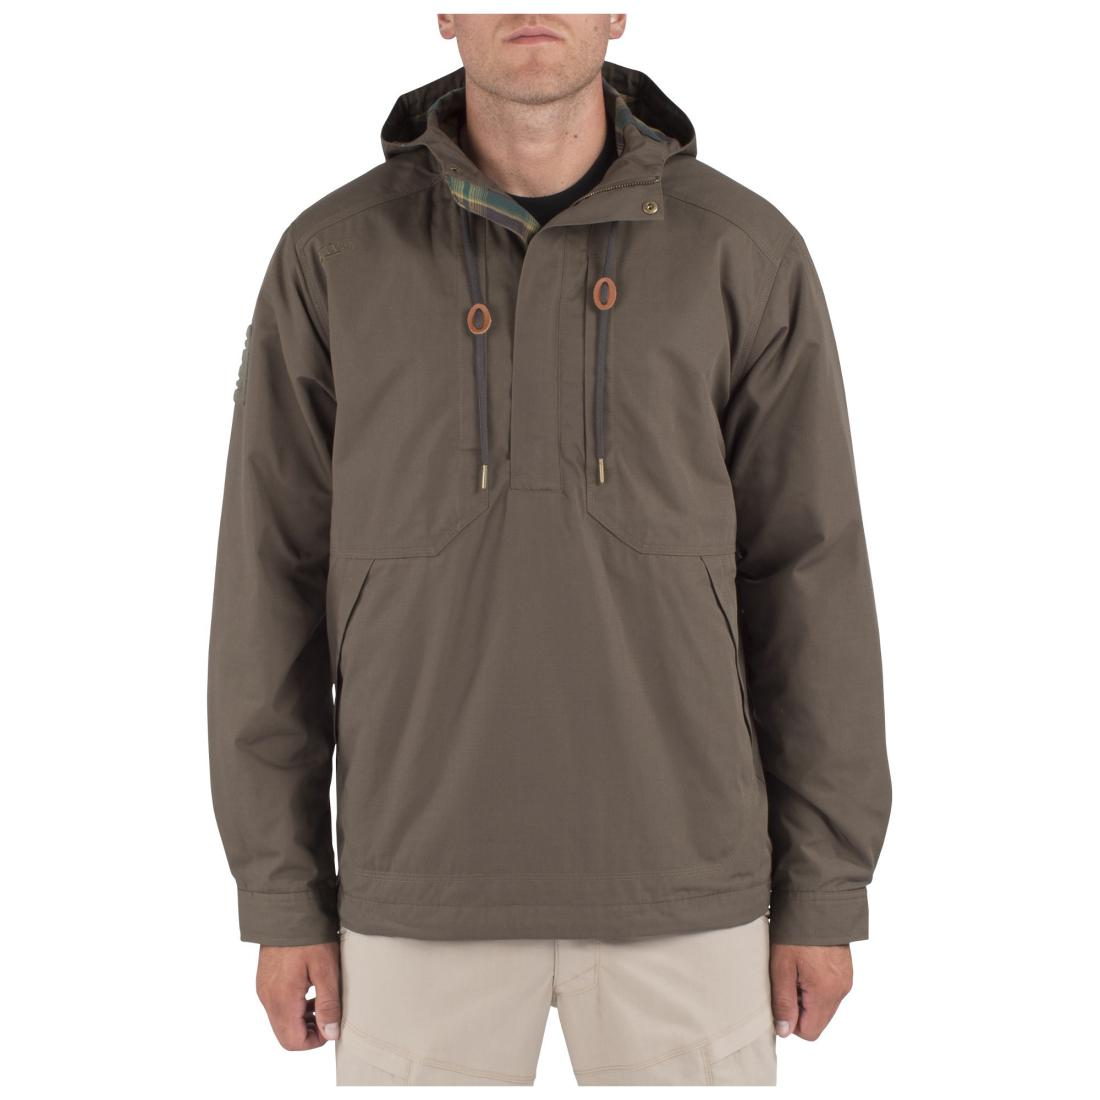 5.11 Tactical 78012 Men Taclite Anorak Jacket Tundra